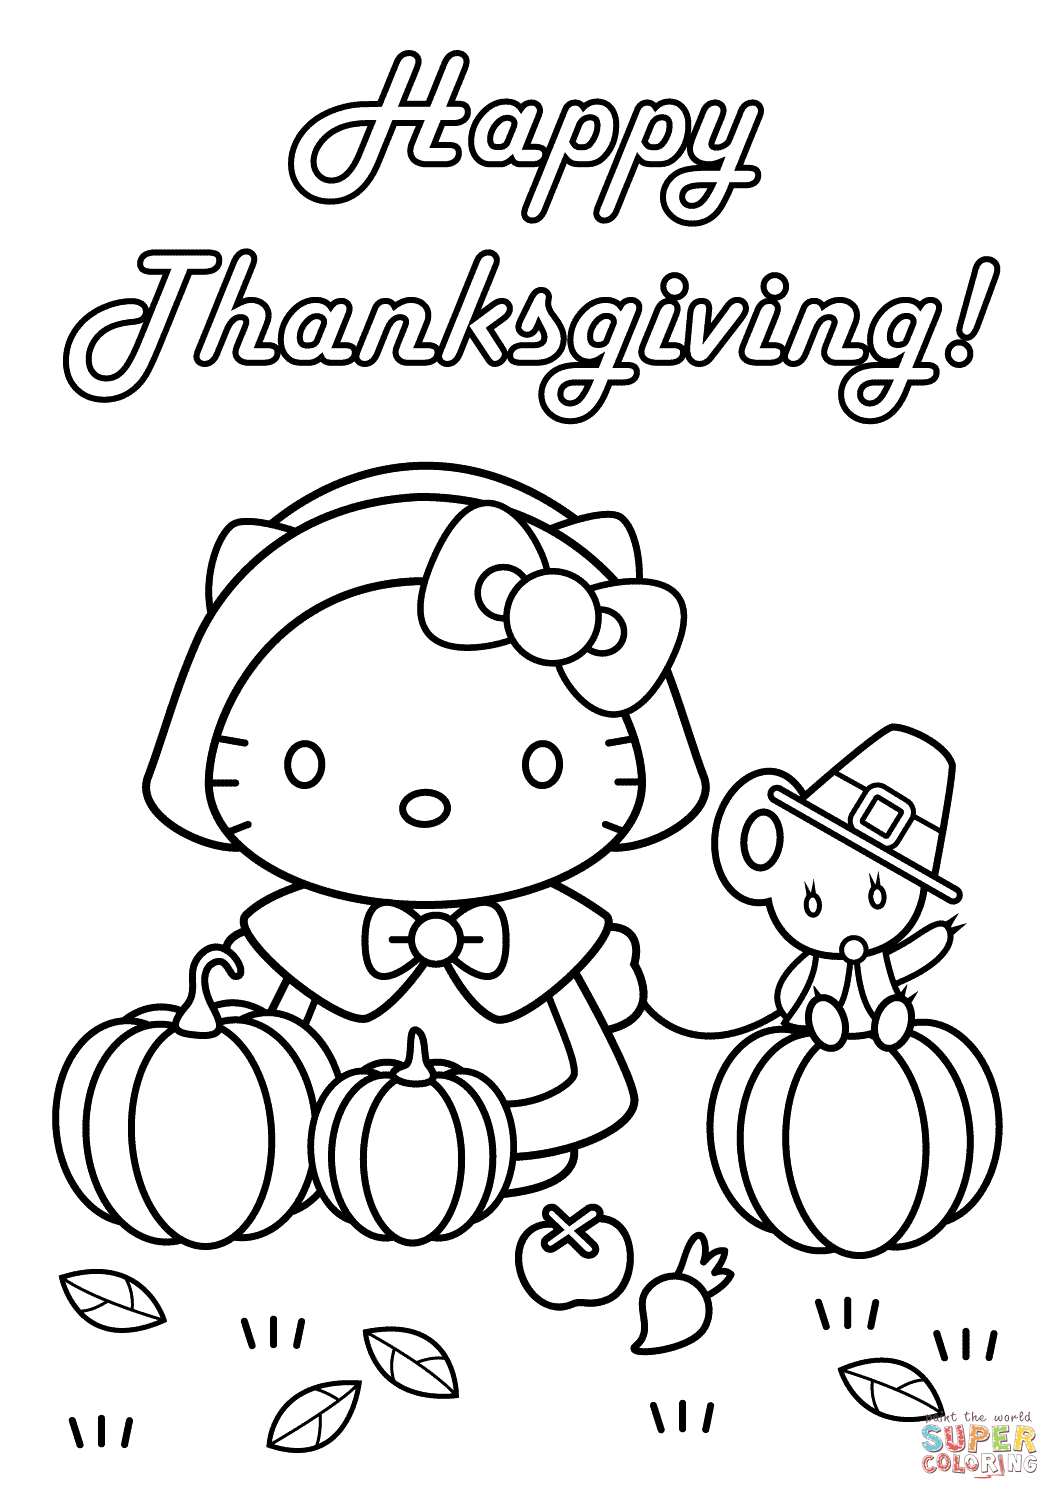 Thanksgiving Coloring Pages For Boys Coloring Pages Hello Kitty Happy Thanksgiving Coloring Page Free